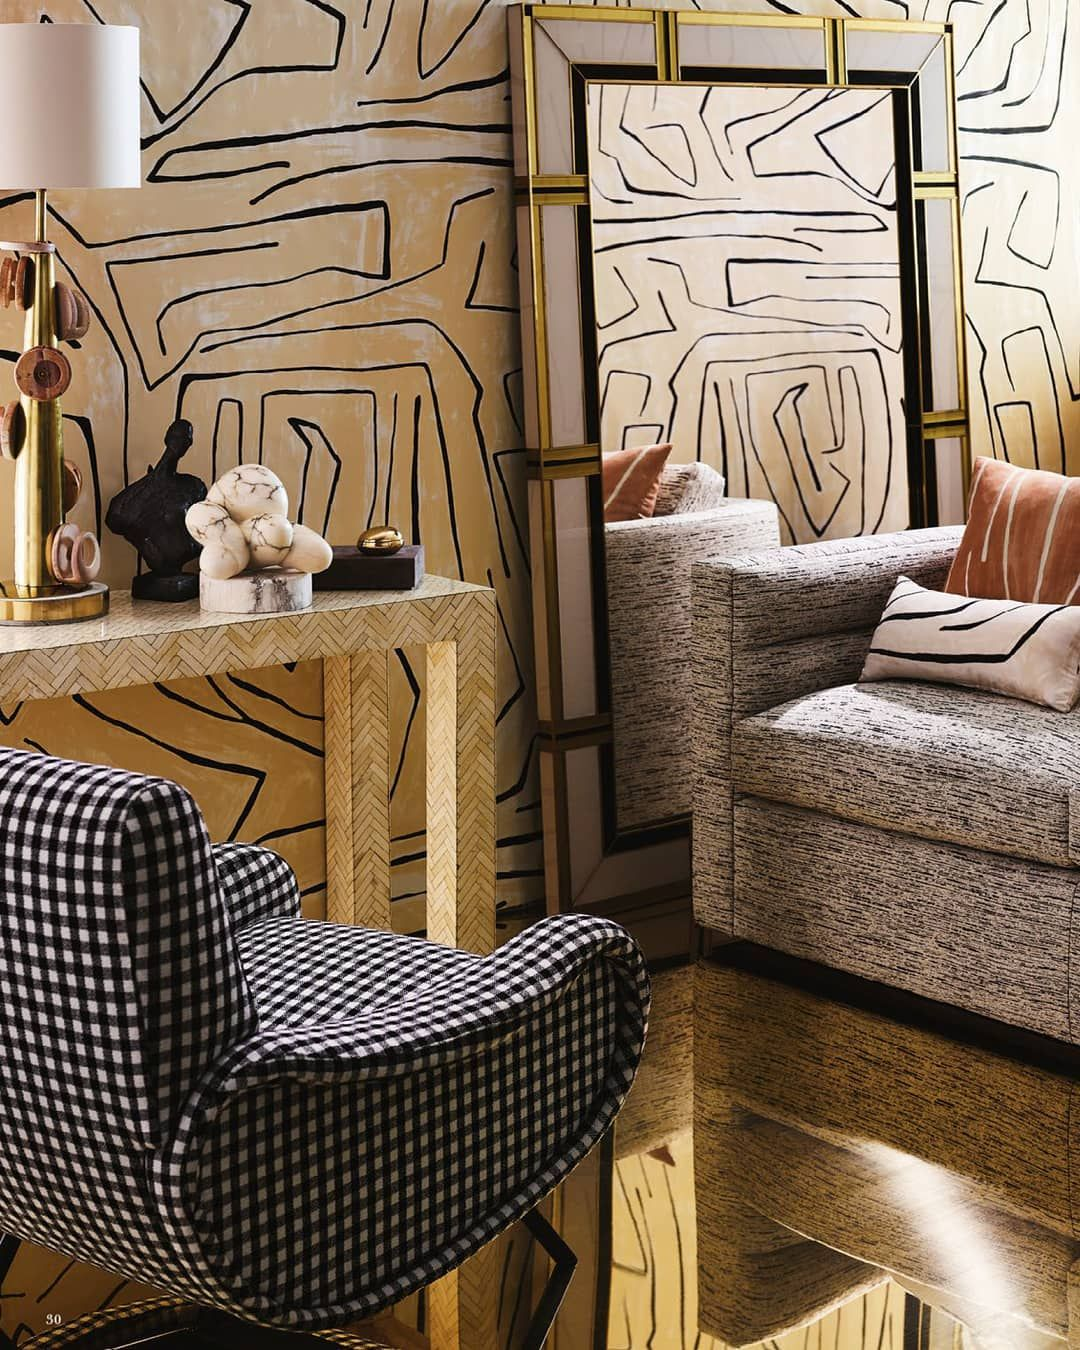 Graffito wallpaper and Melrose Sofa as featured in